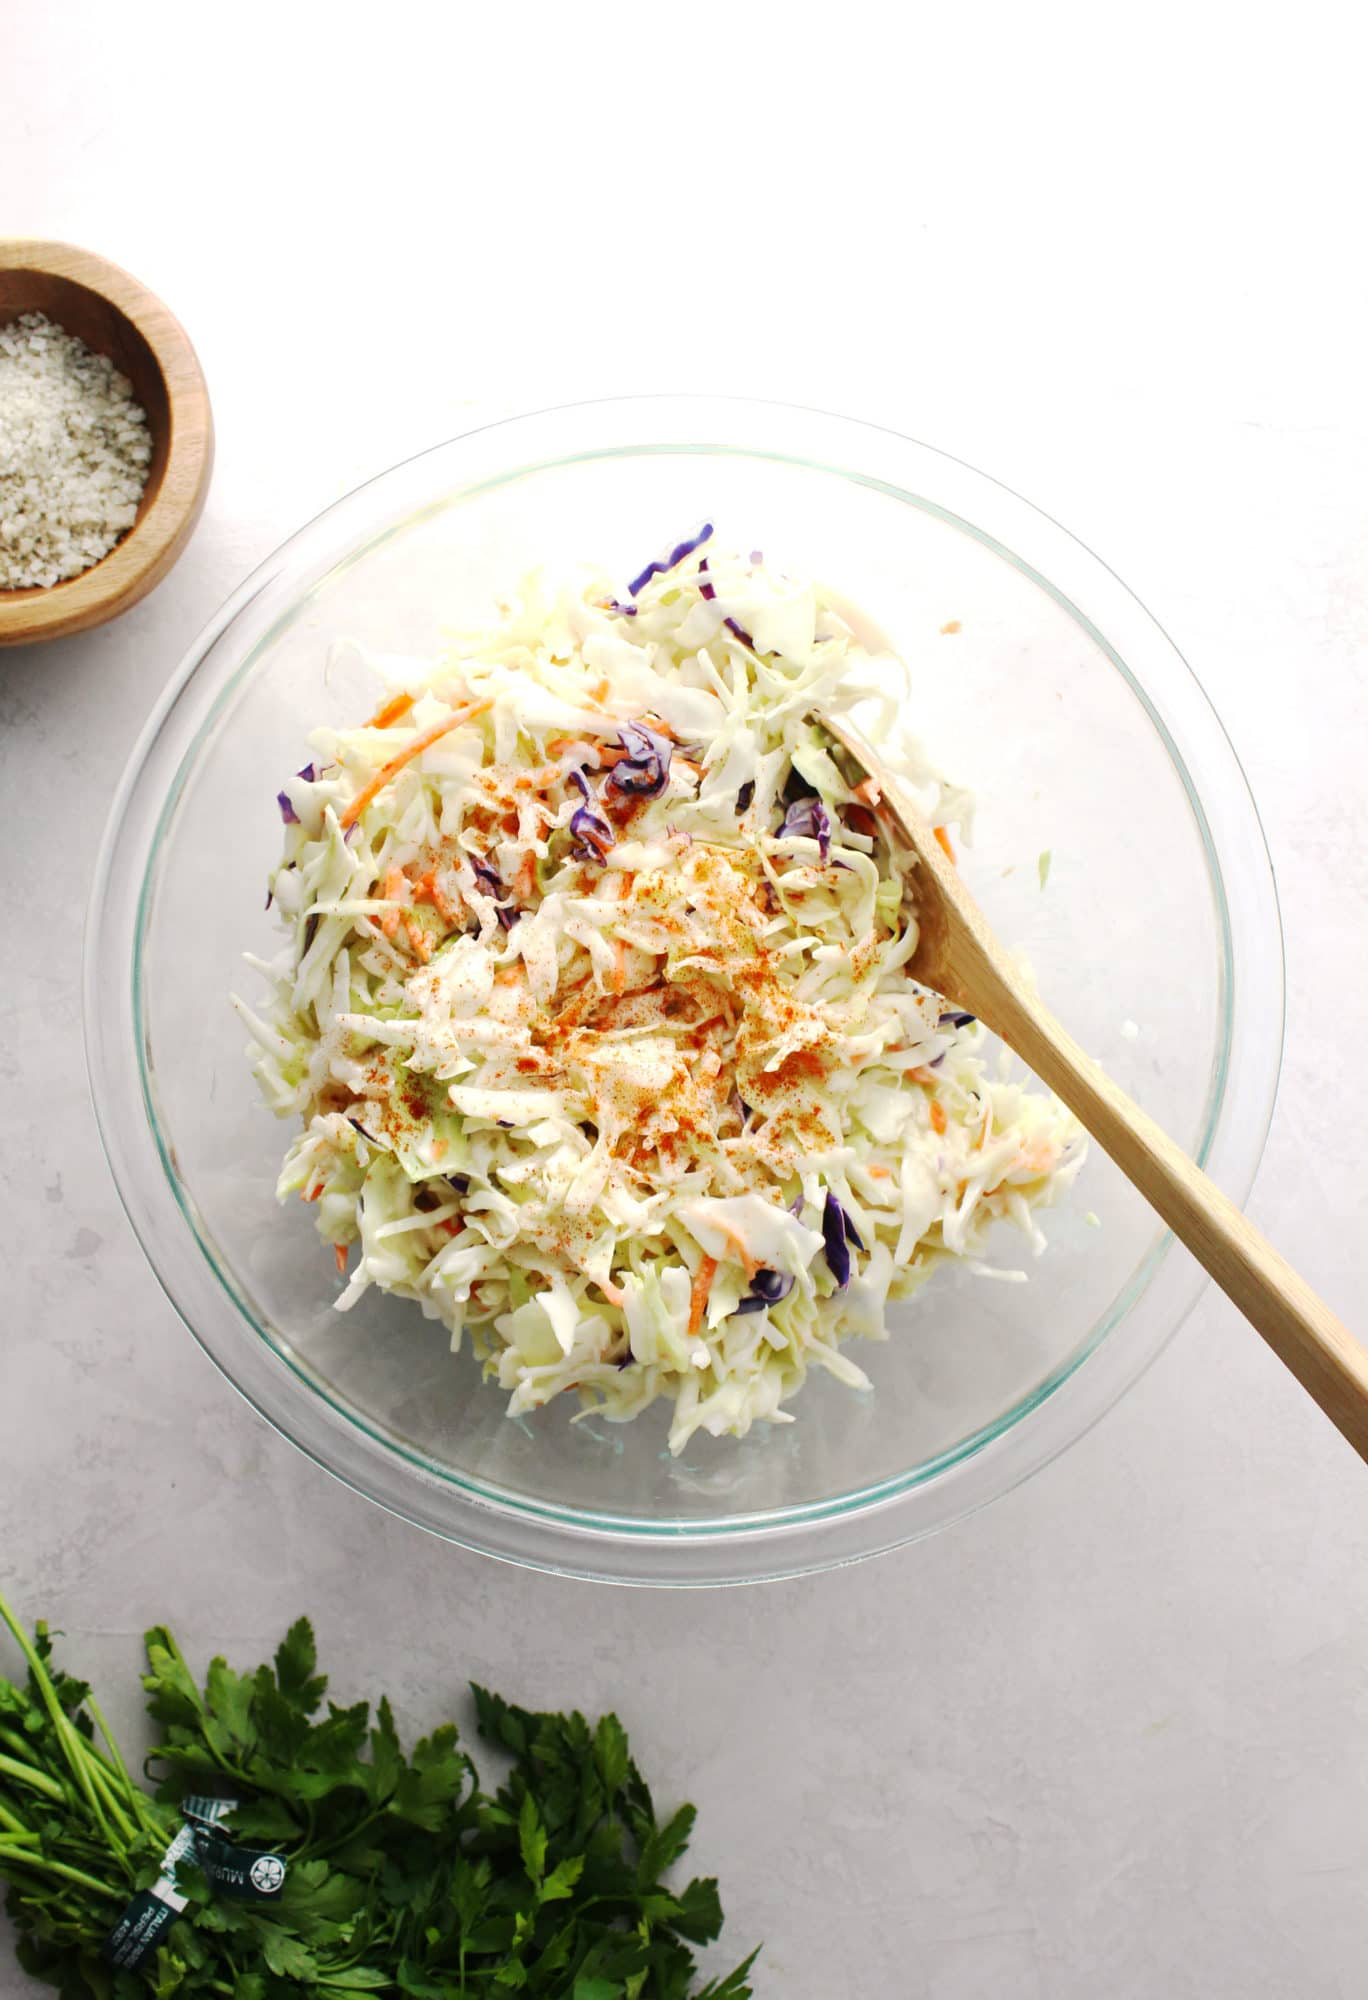 coleslaw in a clear glass bowl with wooden spoon